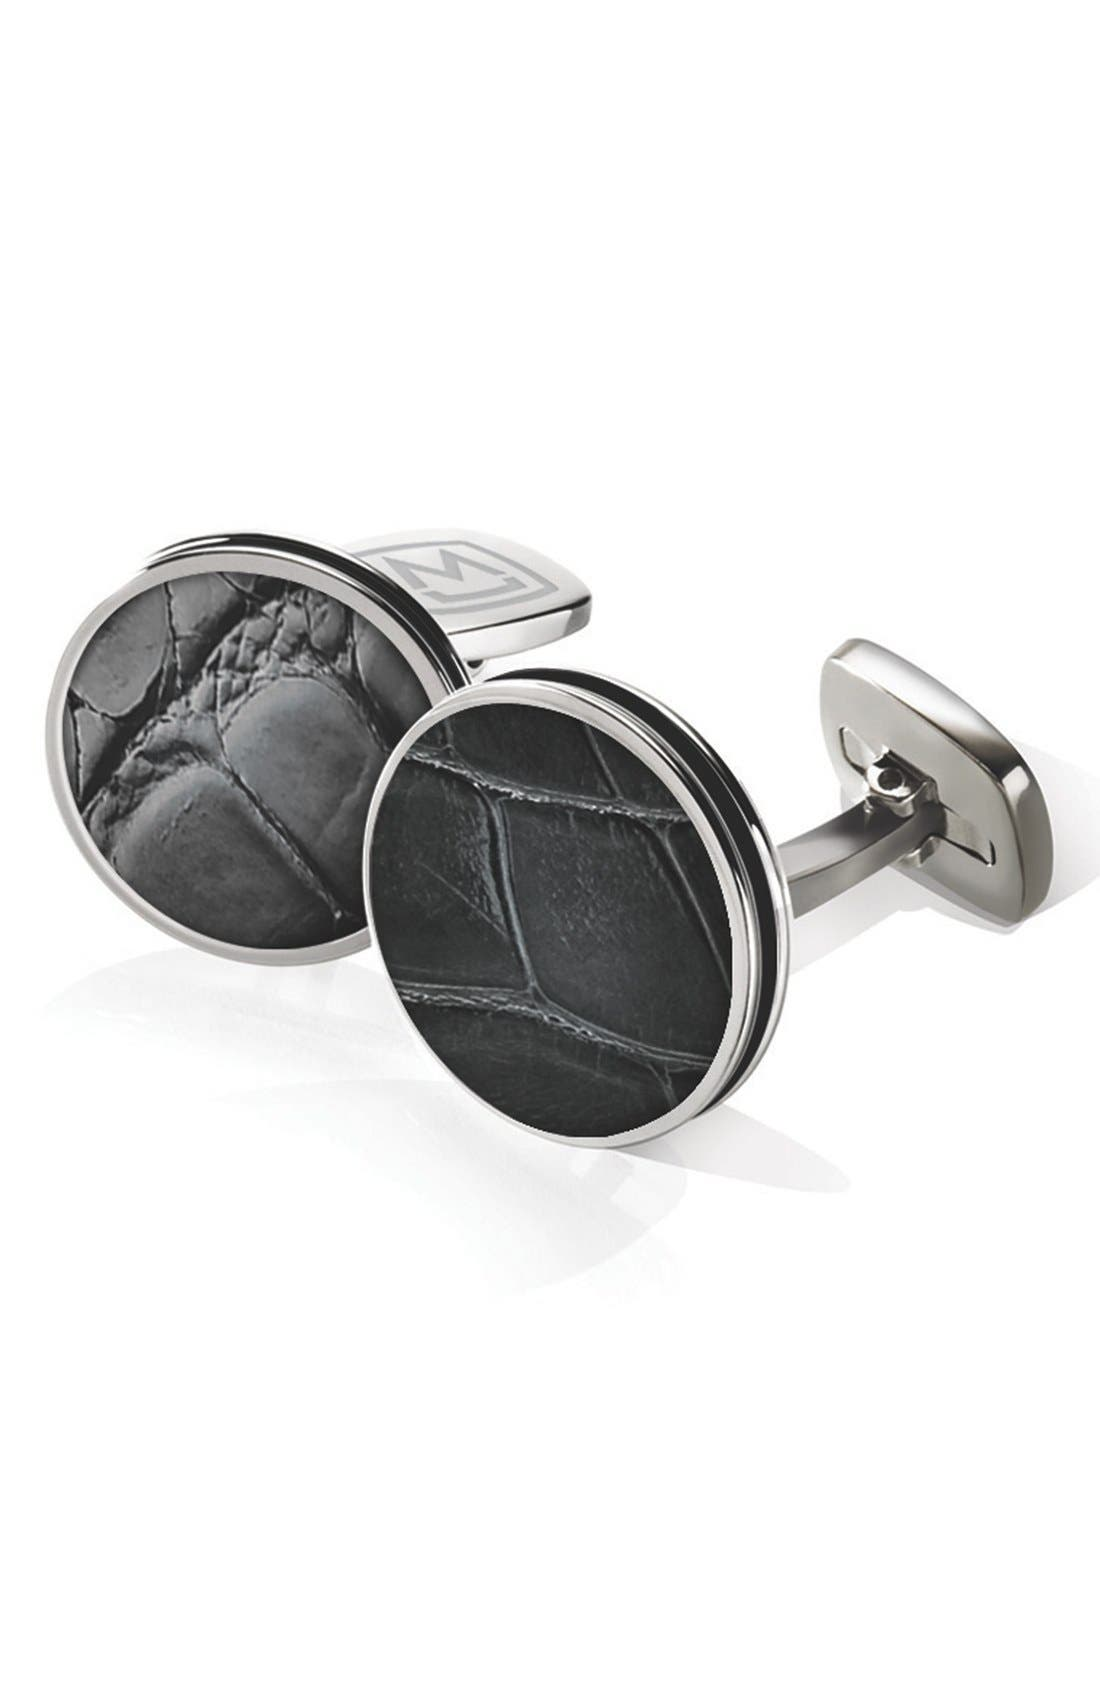 Alligator Cuff Links,                             Main thumbnail 1, color,                             STAINLESS STEEL/ BLACK